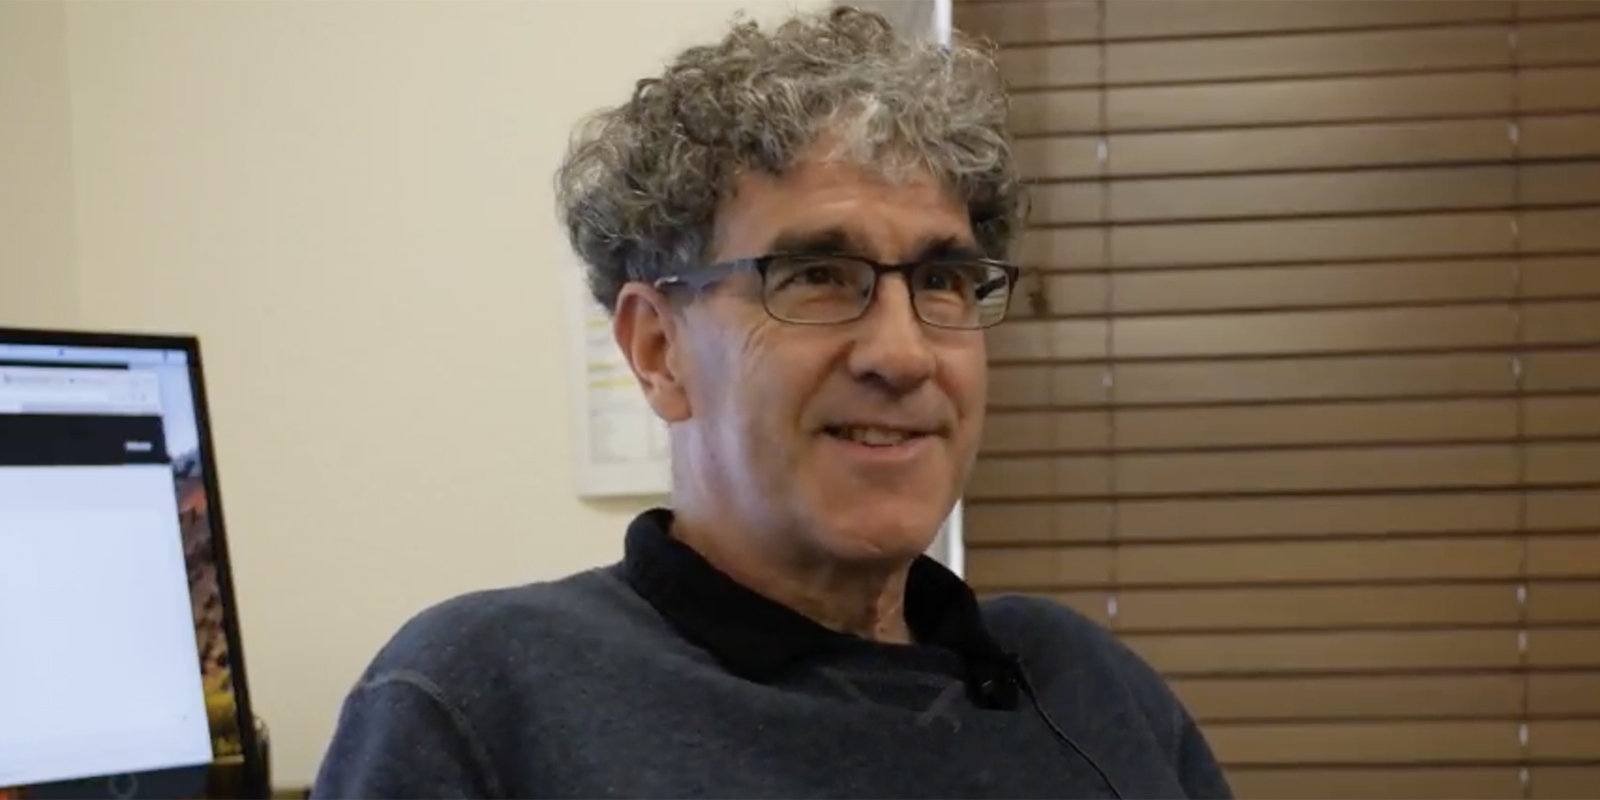 USD Professor John Glick, PhD